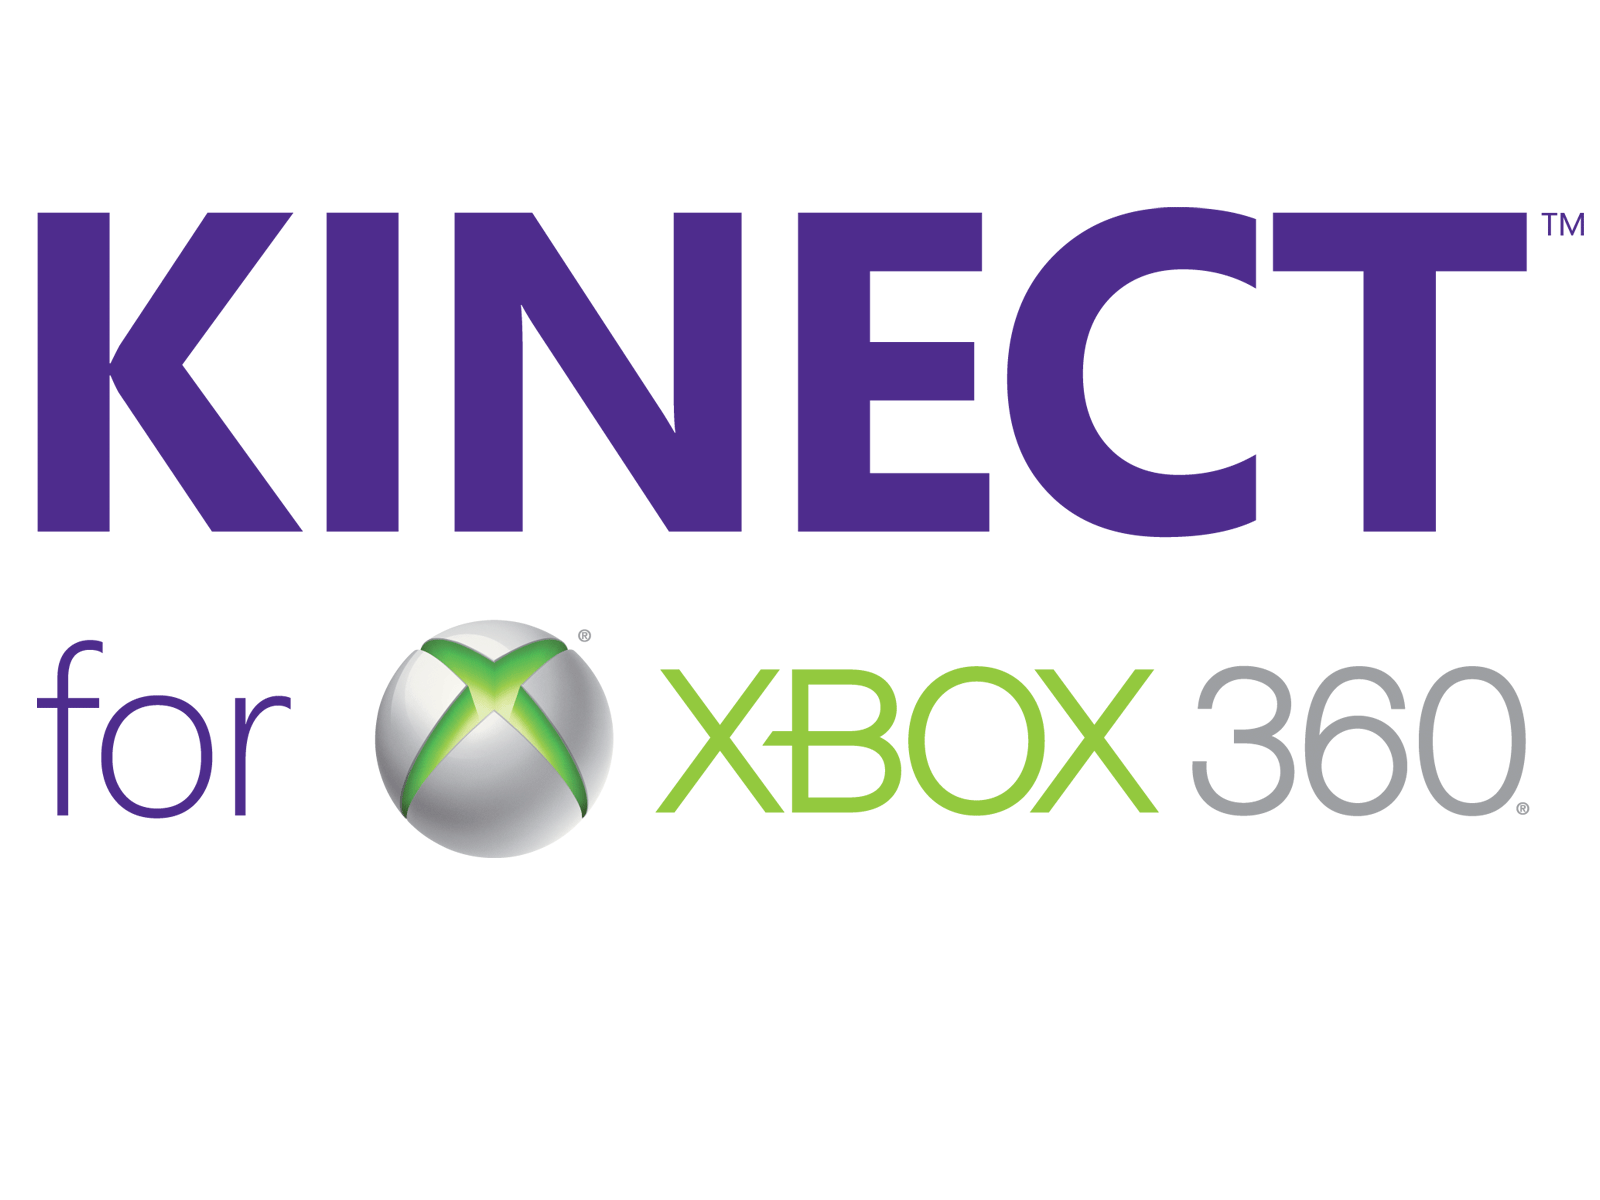 Is the Kinect A Total Failure? Whose Failure?